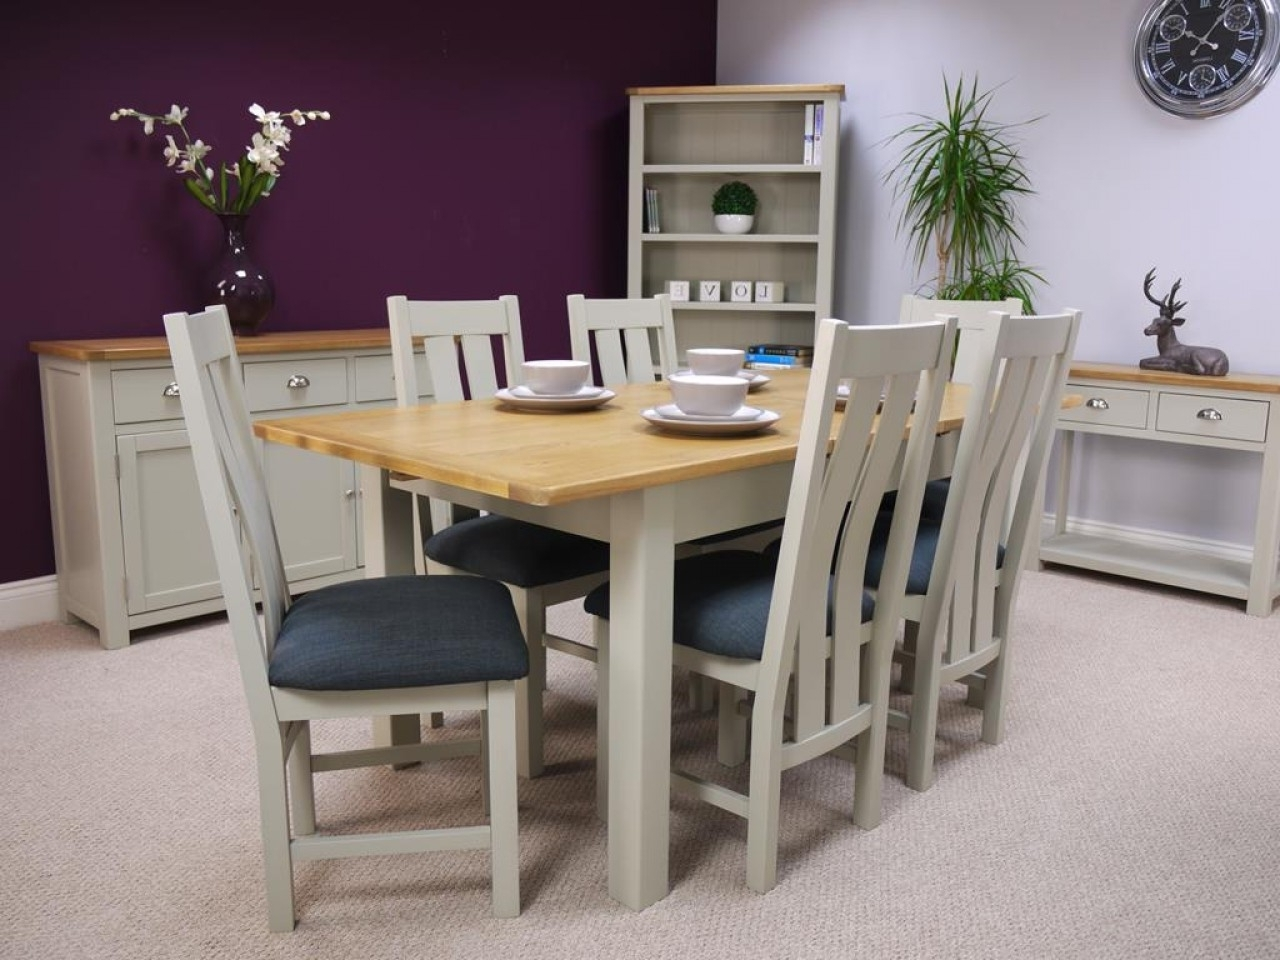 Dining Extending Tables And Chairs with regard to Recent 5. Modern Venicia Collection Extending Dining Table In Grey Grey